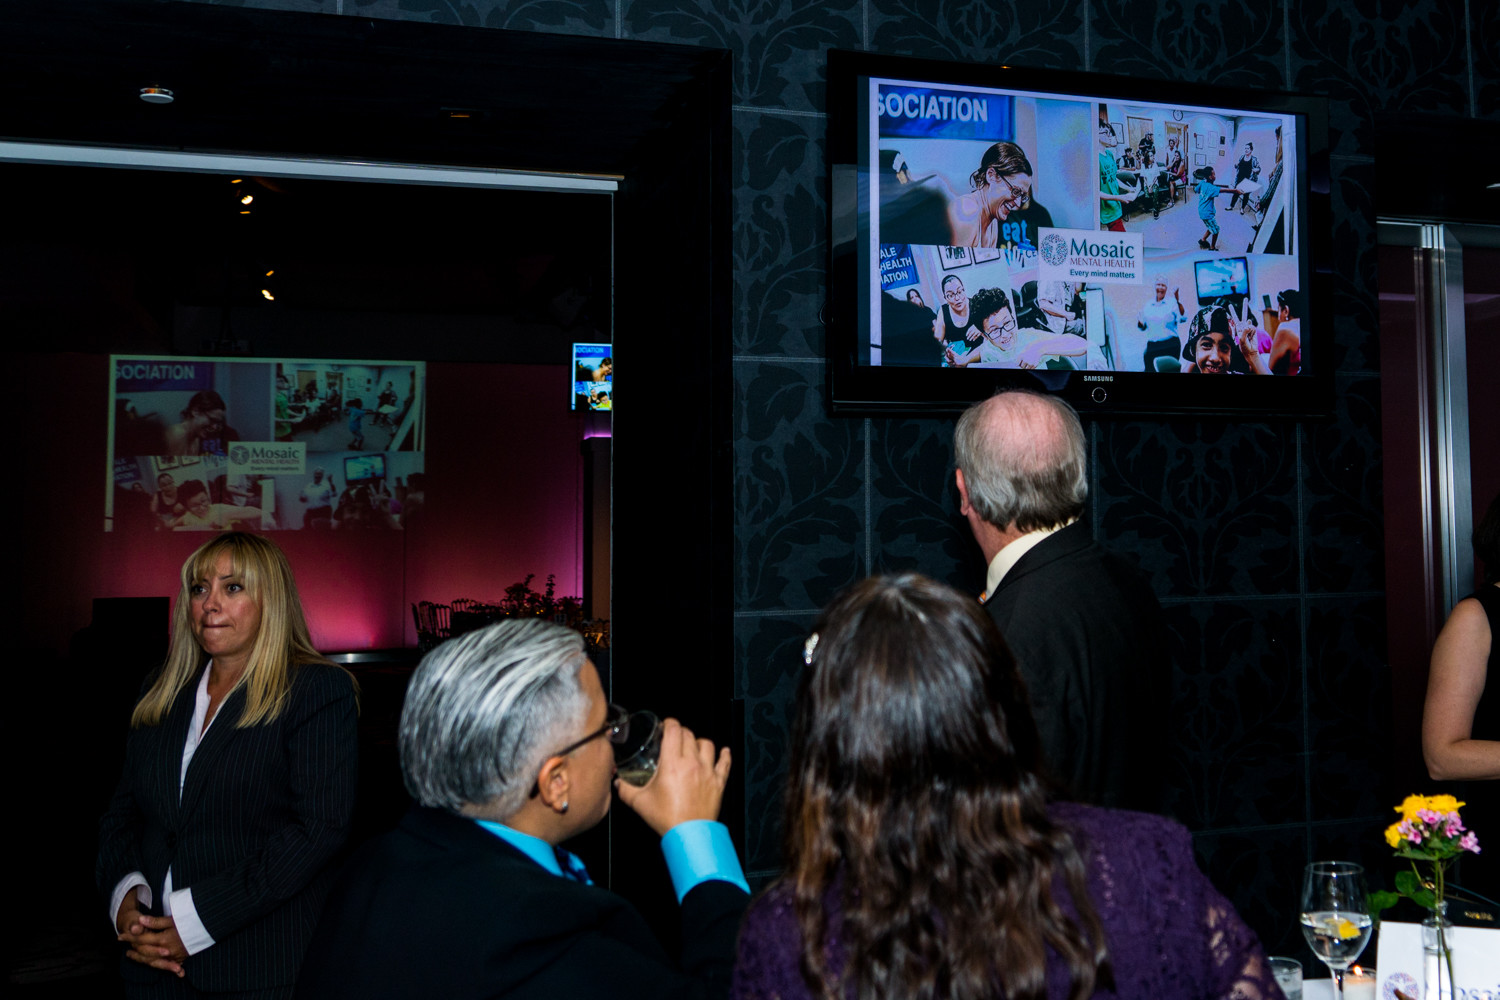 Gala attendees look at a slideshow about Mosaic Mental Health. The organization offers services like counseling and youth programs, serving 1,000 patients annually.